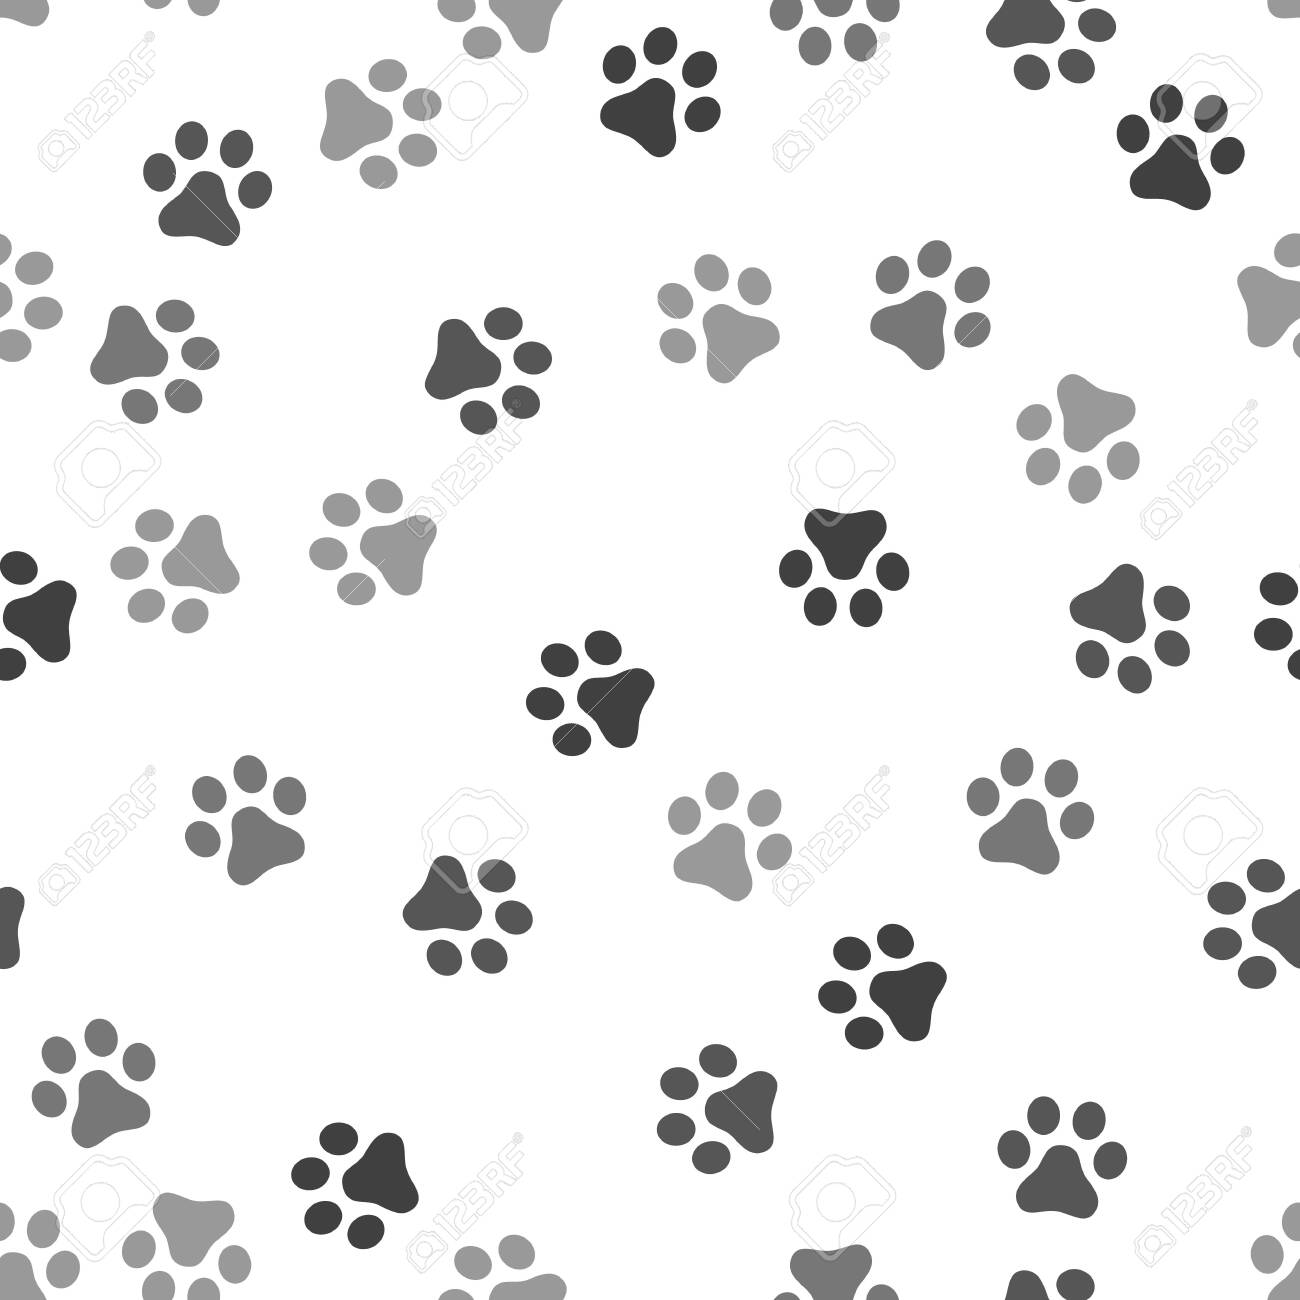 Dog Paw Seamless Pattern Vector Footprint Kitten Puppy Tile Background Royalty Free Cliparts Vectors And Stock Illustration Image 120383302